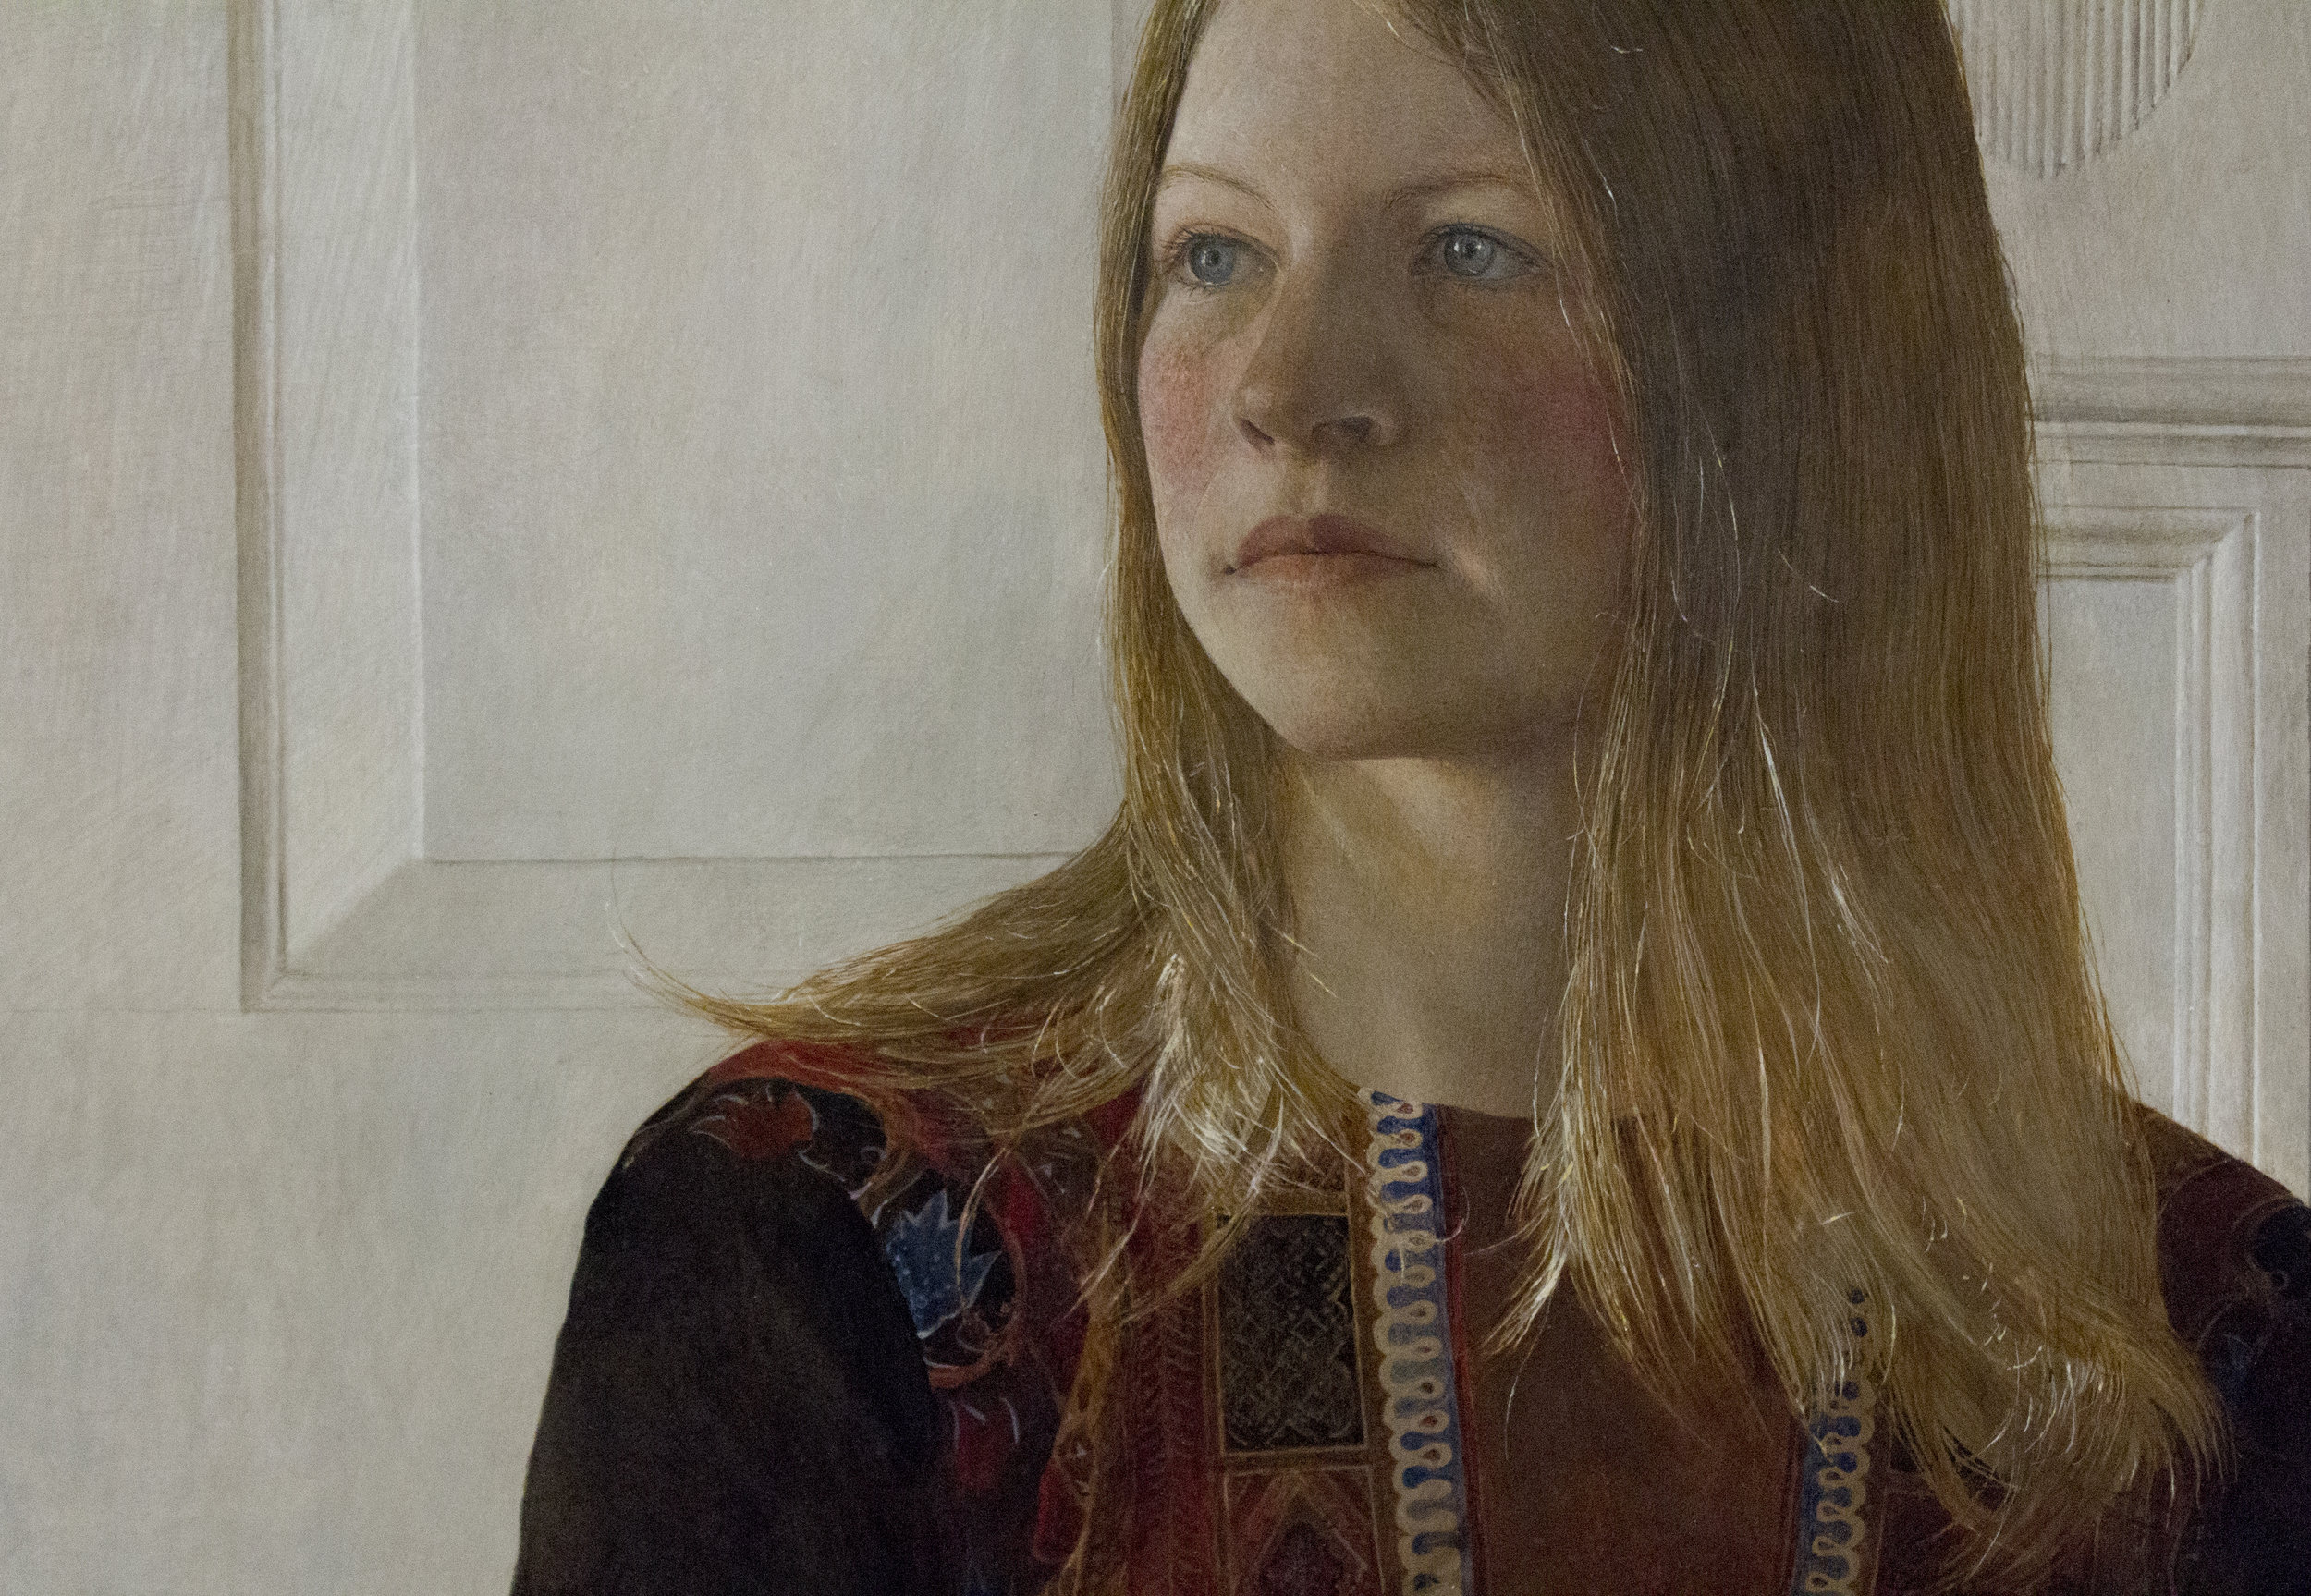 Siri (detail), 1970, Tempera on Panel. Andrew Wyeth. The Brandywine Museum of Art. Image courtesy of author.